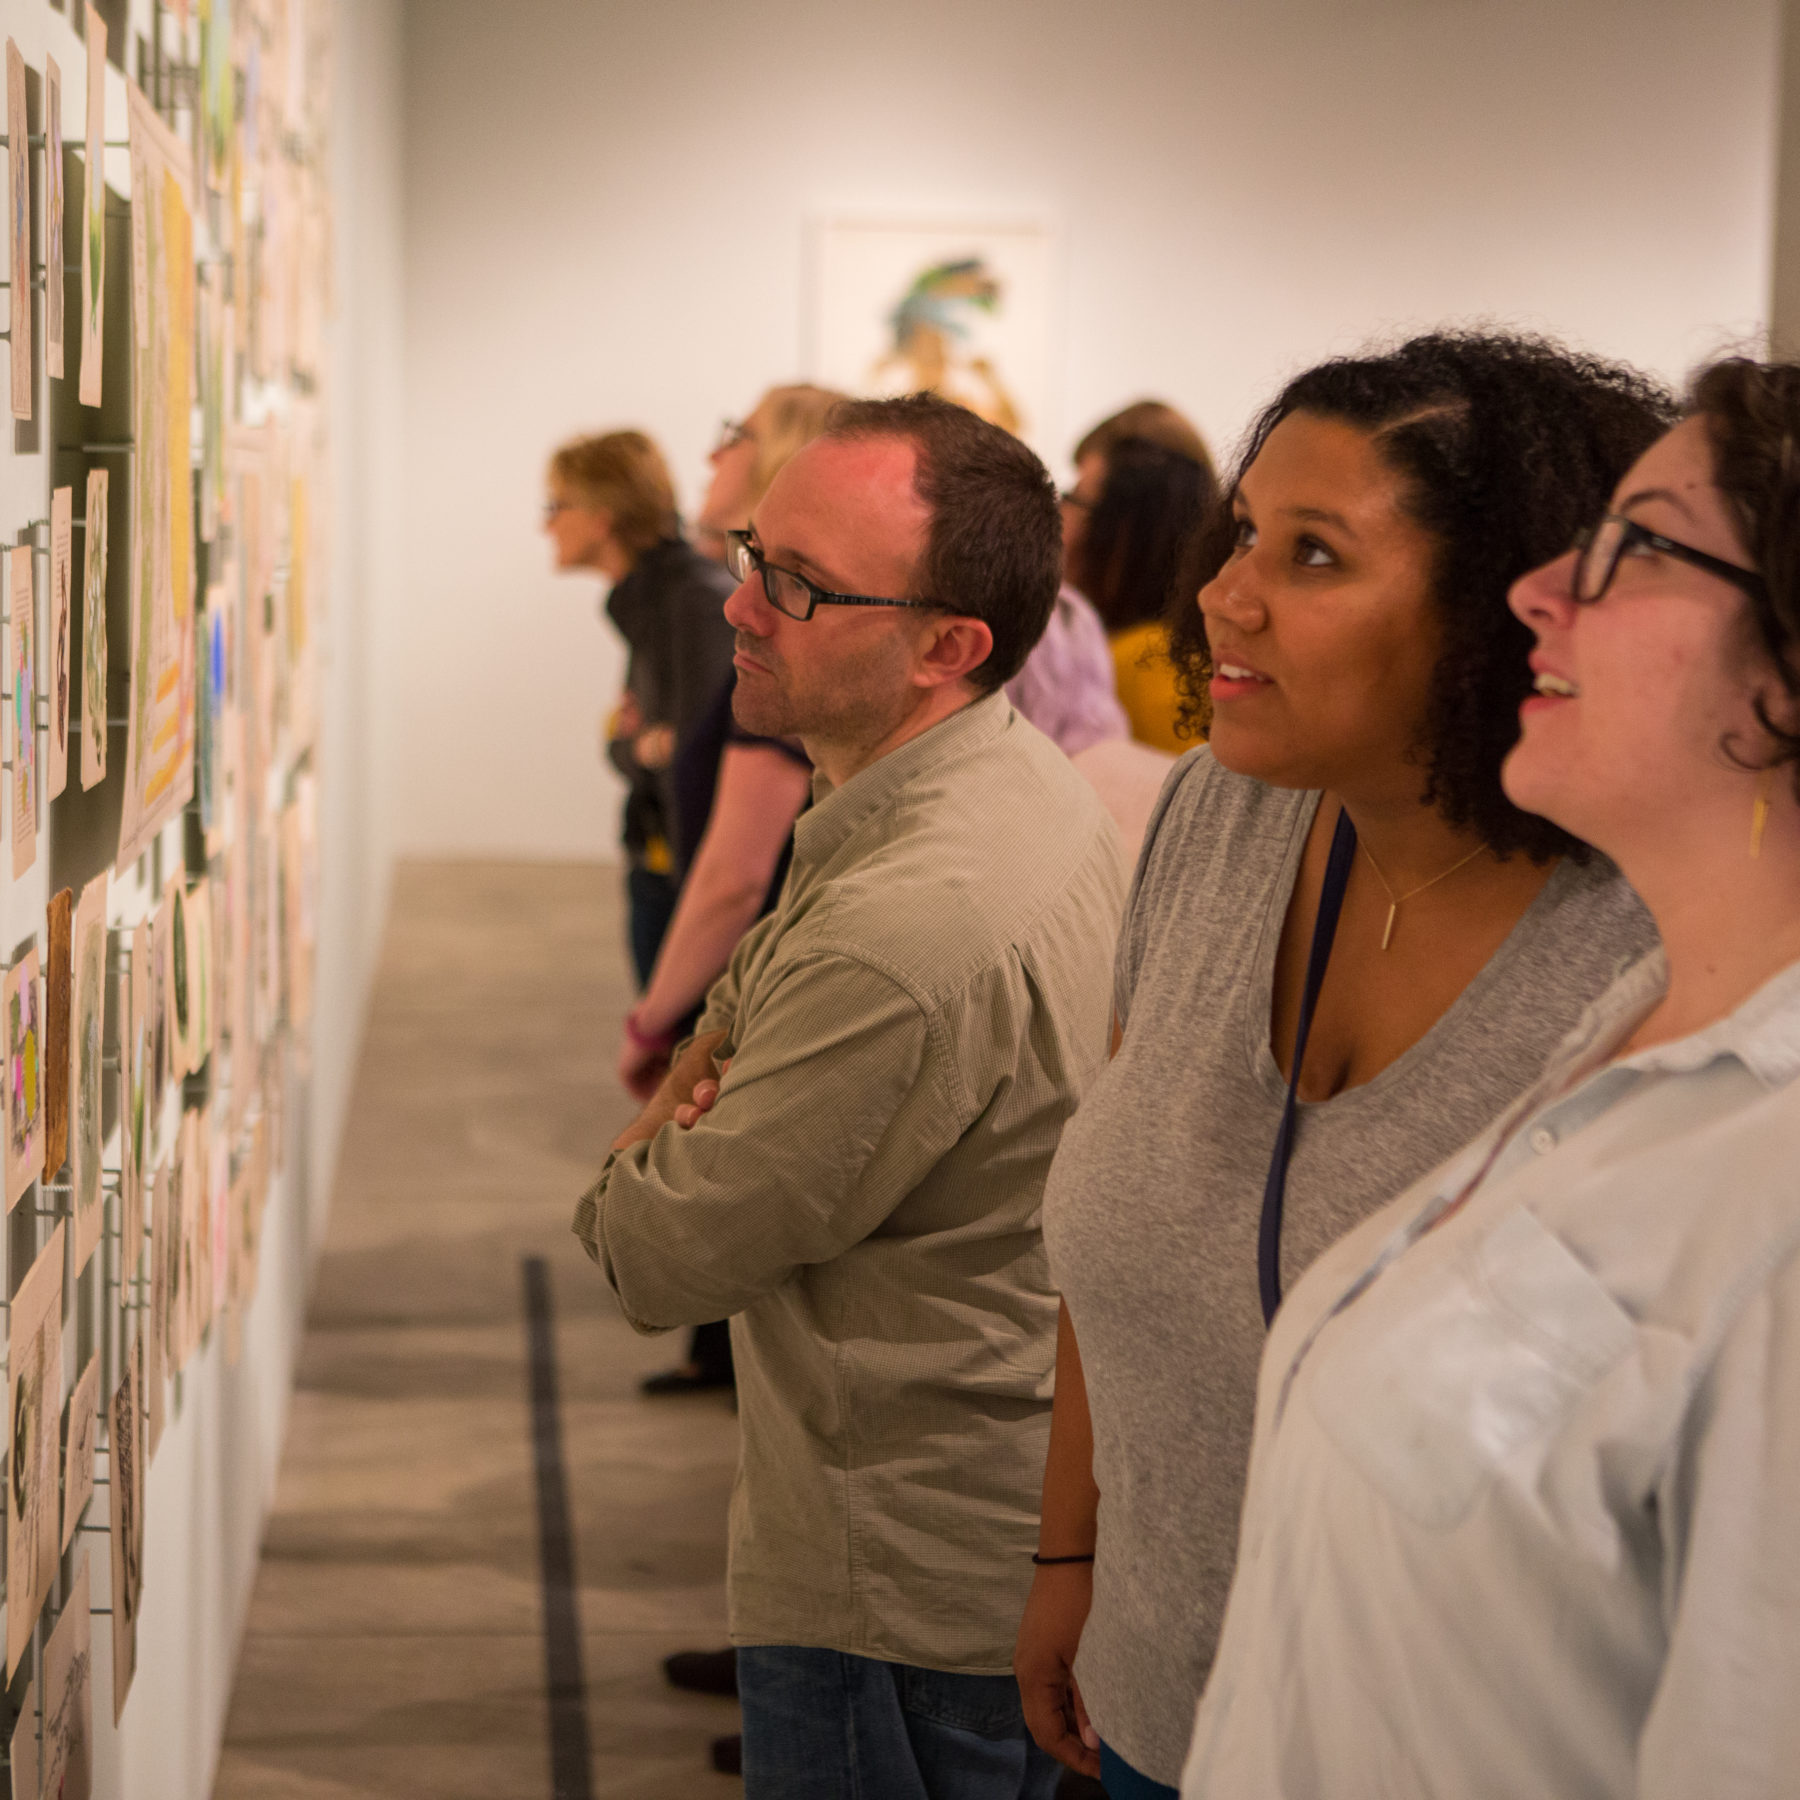 A large group of patrons examines a series of small pieces tacked to the wall on the left side of the image during a Sip and Sketch event.